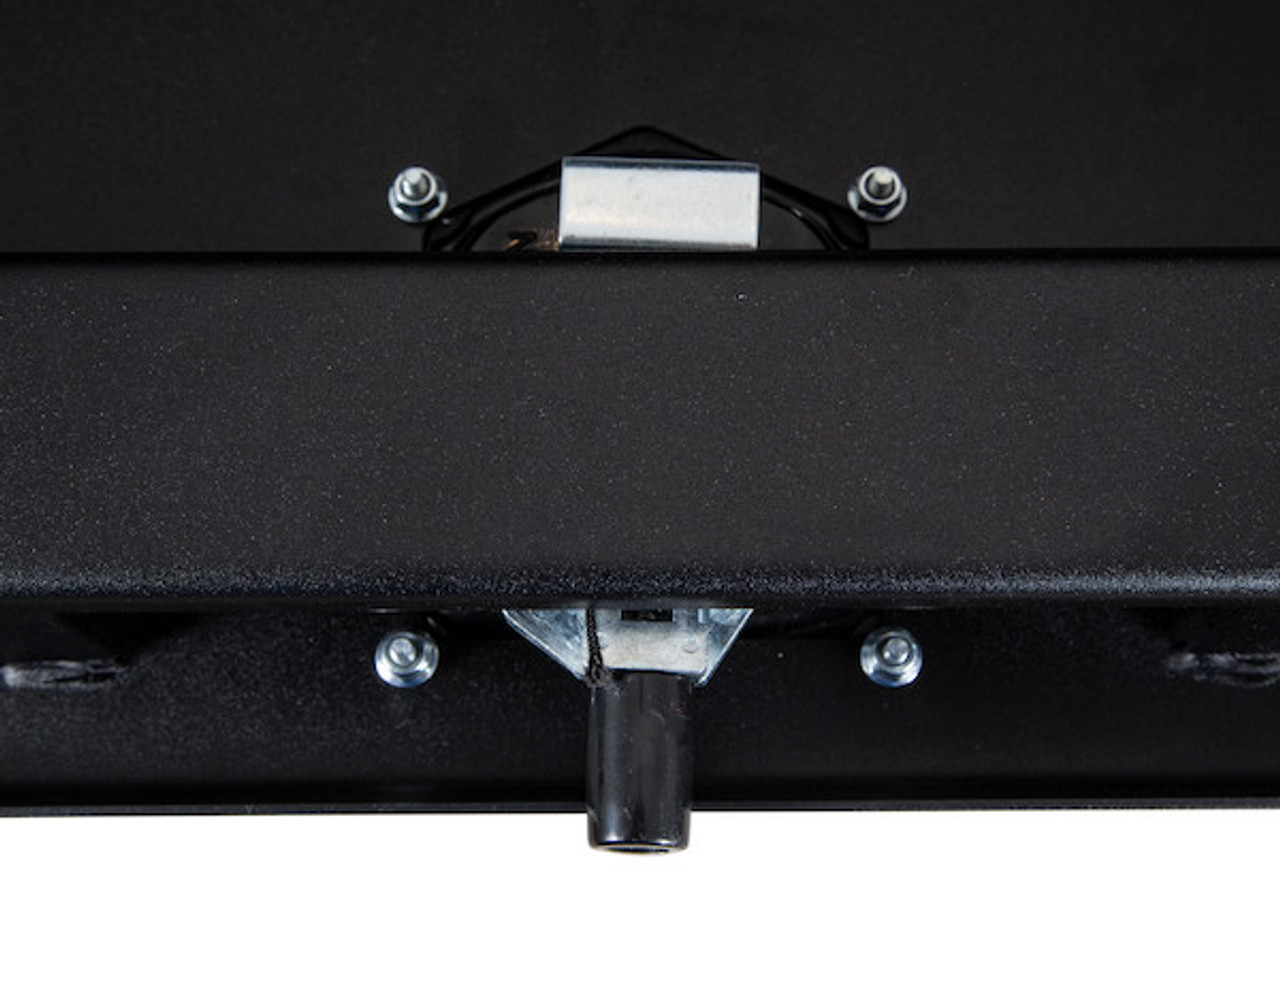 """1734505 BUYERS PRODUCTS TEXTURED MATTE BLACK STEEL UNDERBODY TRUCK TOOLBOX WITH 3-POINT LATCH 24""""Hx24""""Dx36""""W  Picture # 7"""